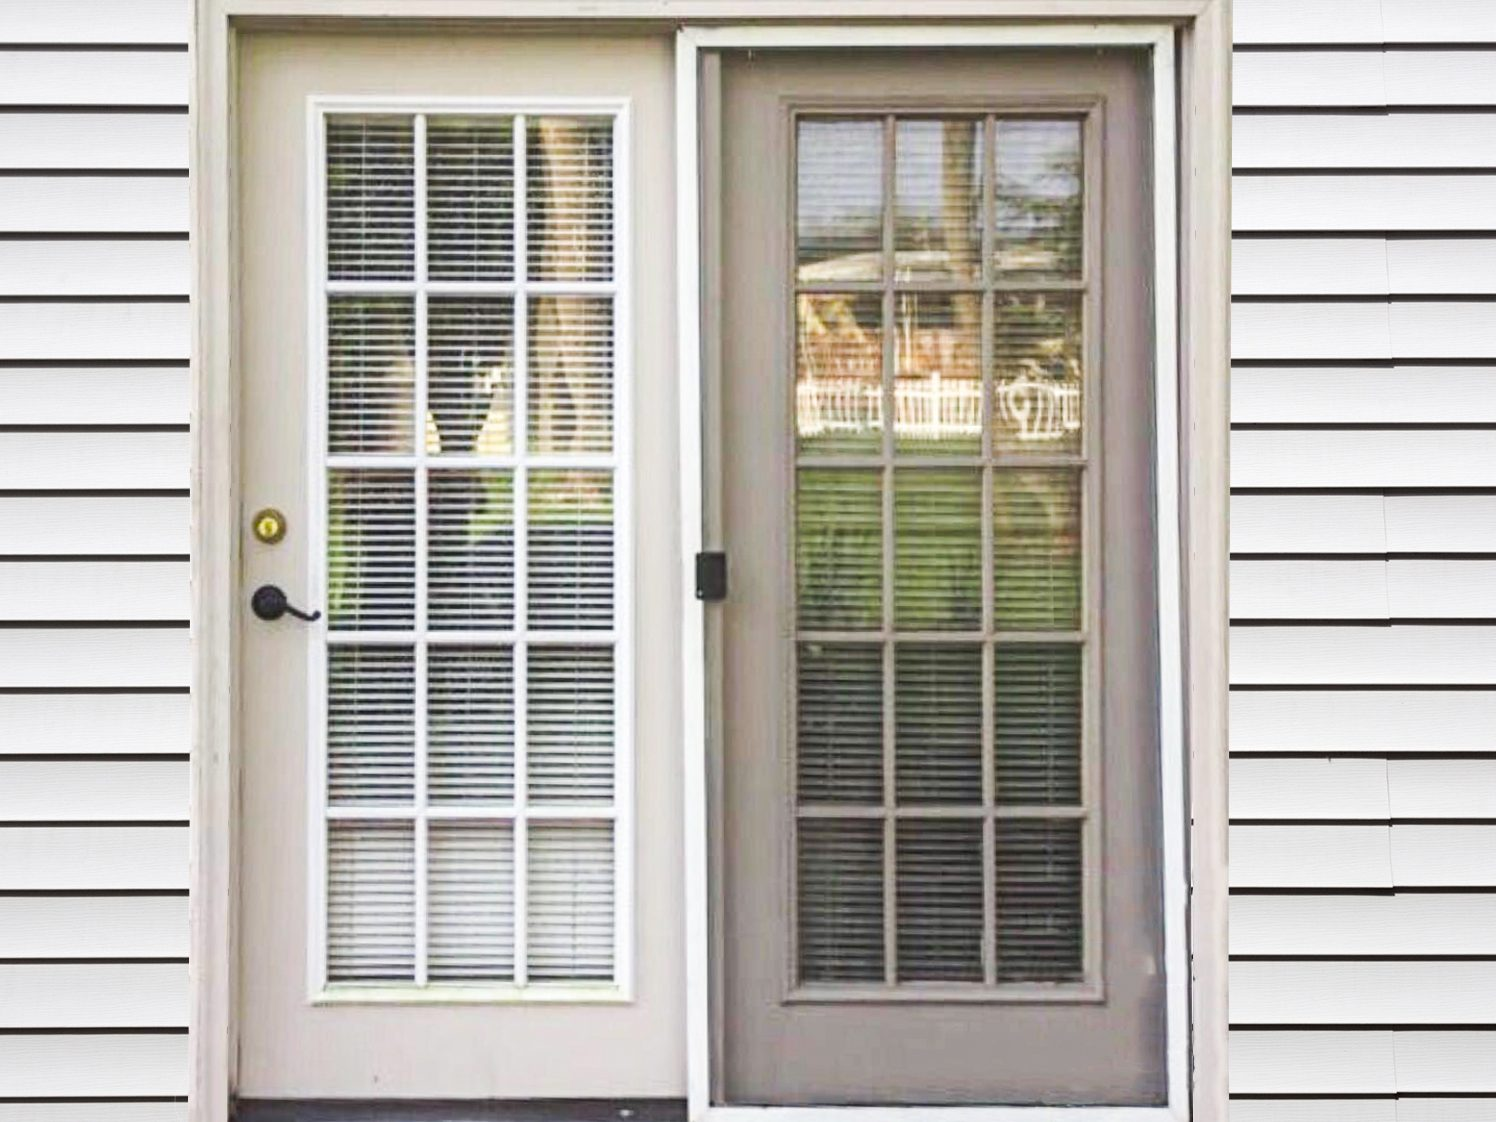 door storm door entry door exterior door interior door repairs replacements smucker exteriors kennett square chester county pennsylvania roofing gutters siding windows doors home improvement copy